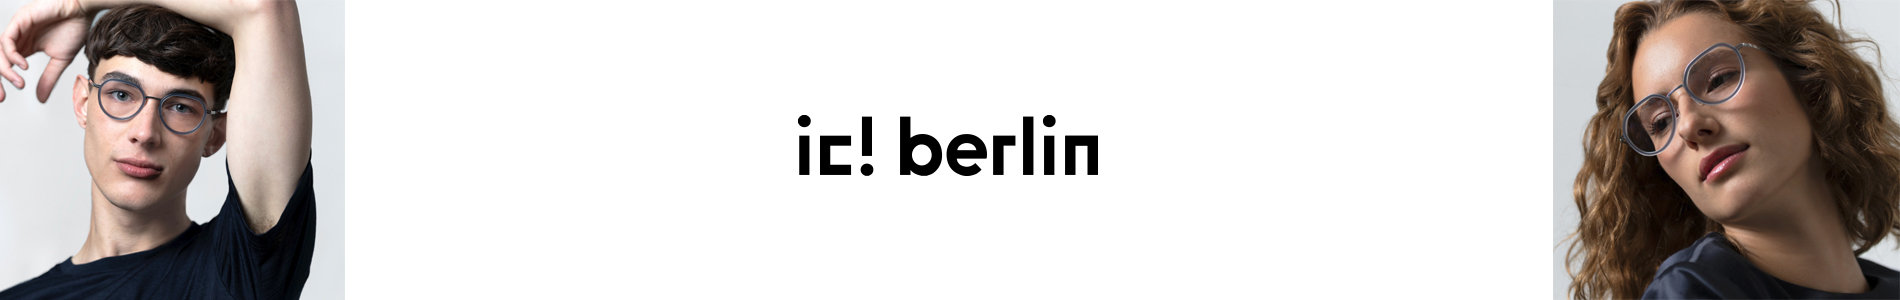 ic berlin eyewear stockists